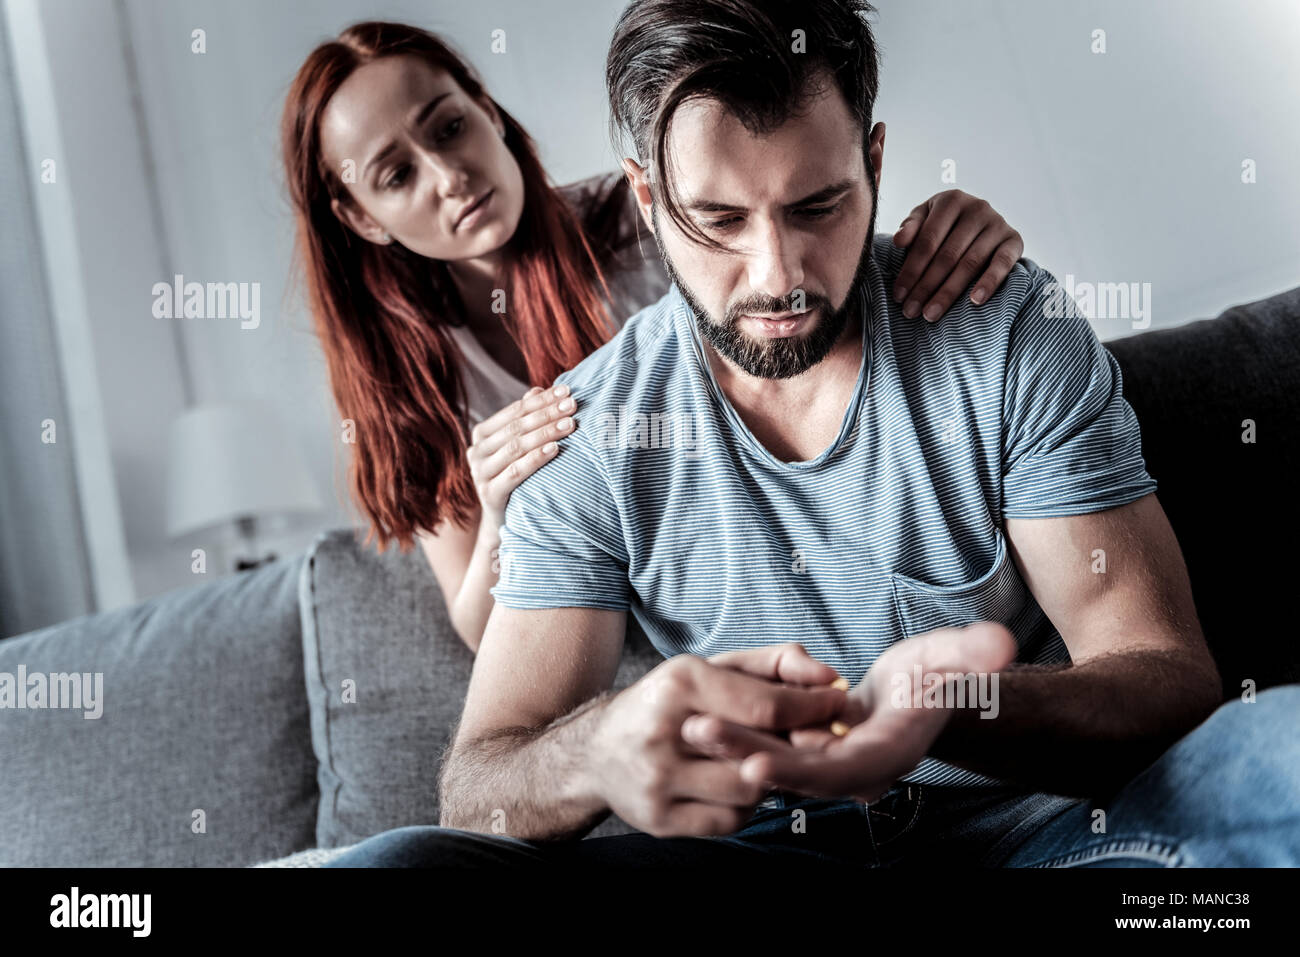 Nice young man suffering from depression - Stock Image